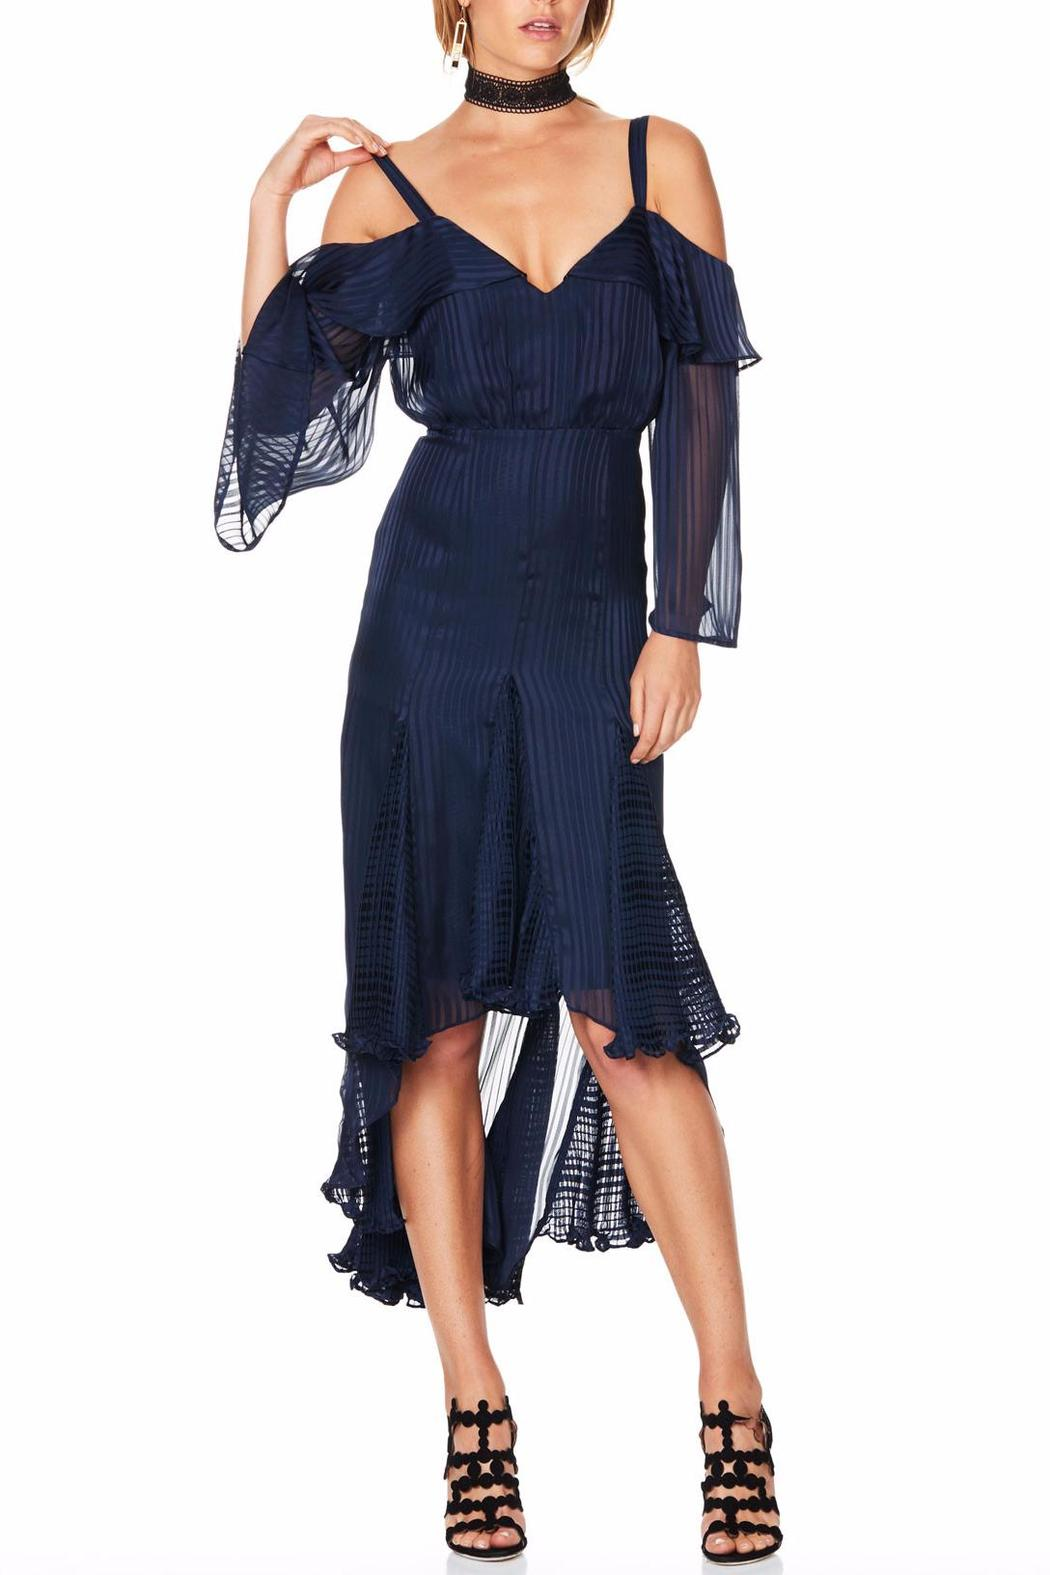 Talulah Midnight Allure Dress - Main Image